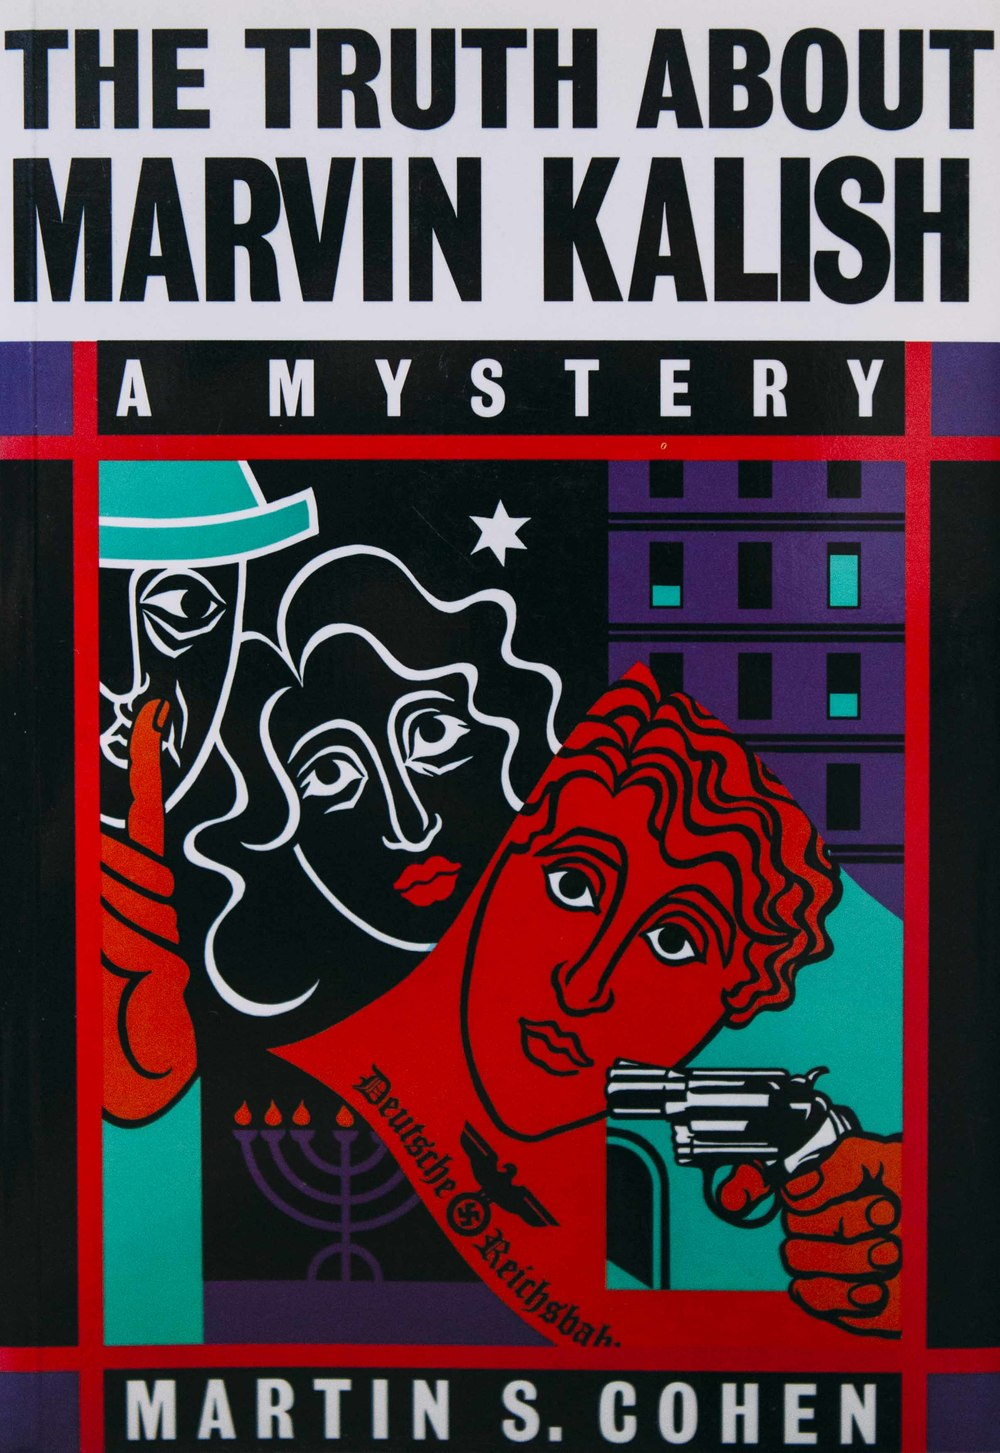 MSC_BookCover_TheTruthAboutMarvinKalish.JPG